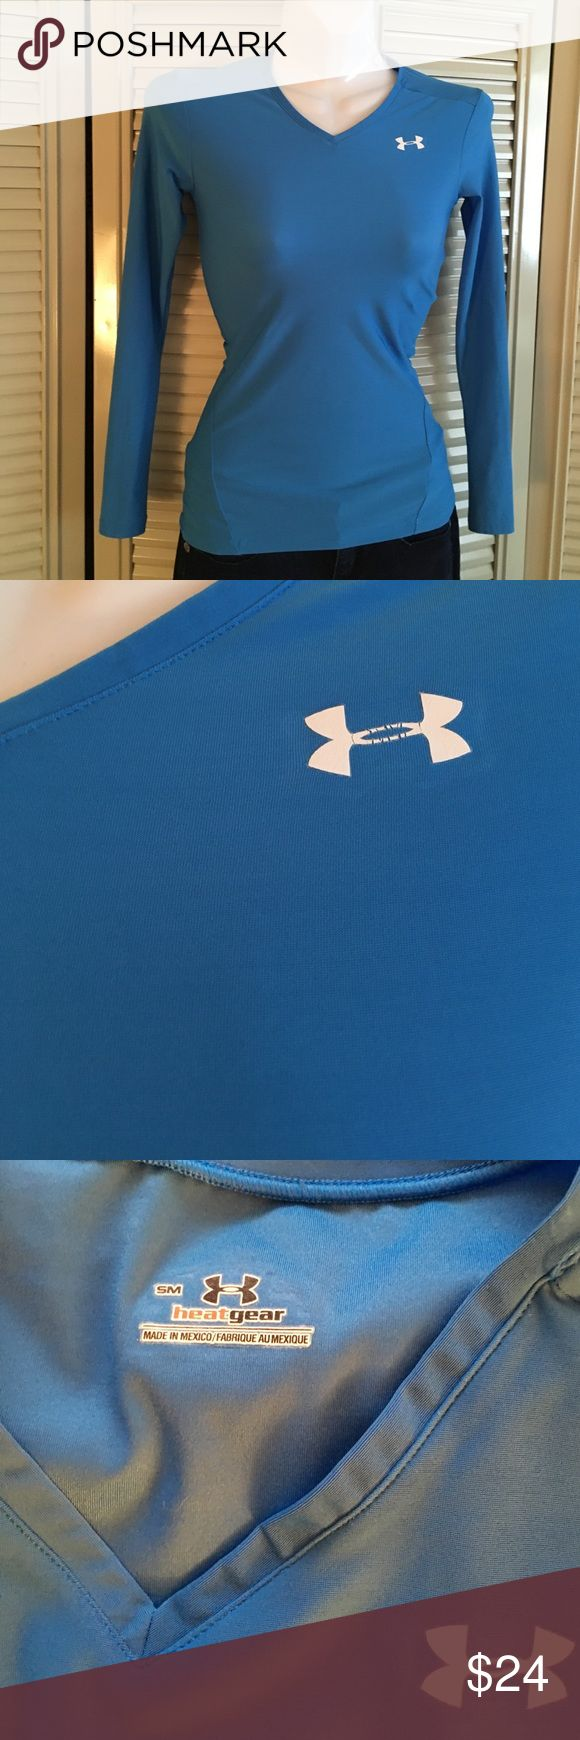 Under amour heat gear - size small Under Armour heat gear compression top. Moisture wicking. Very nice blue color. Under Armour Tops